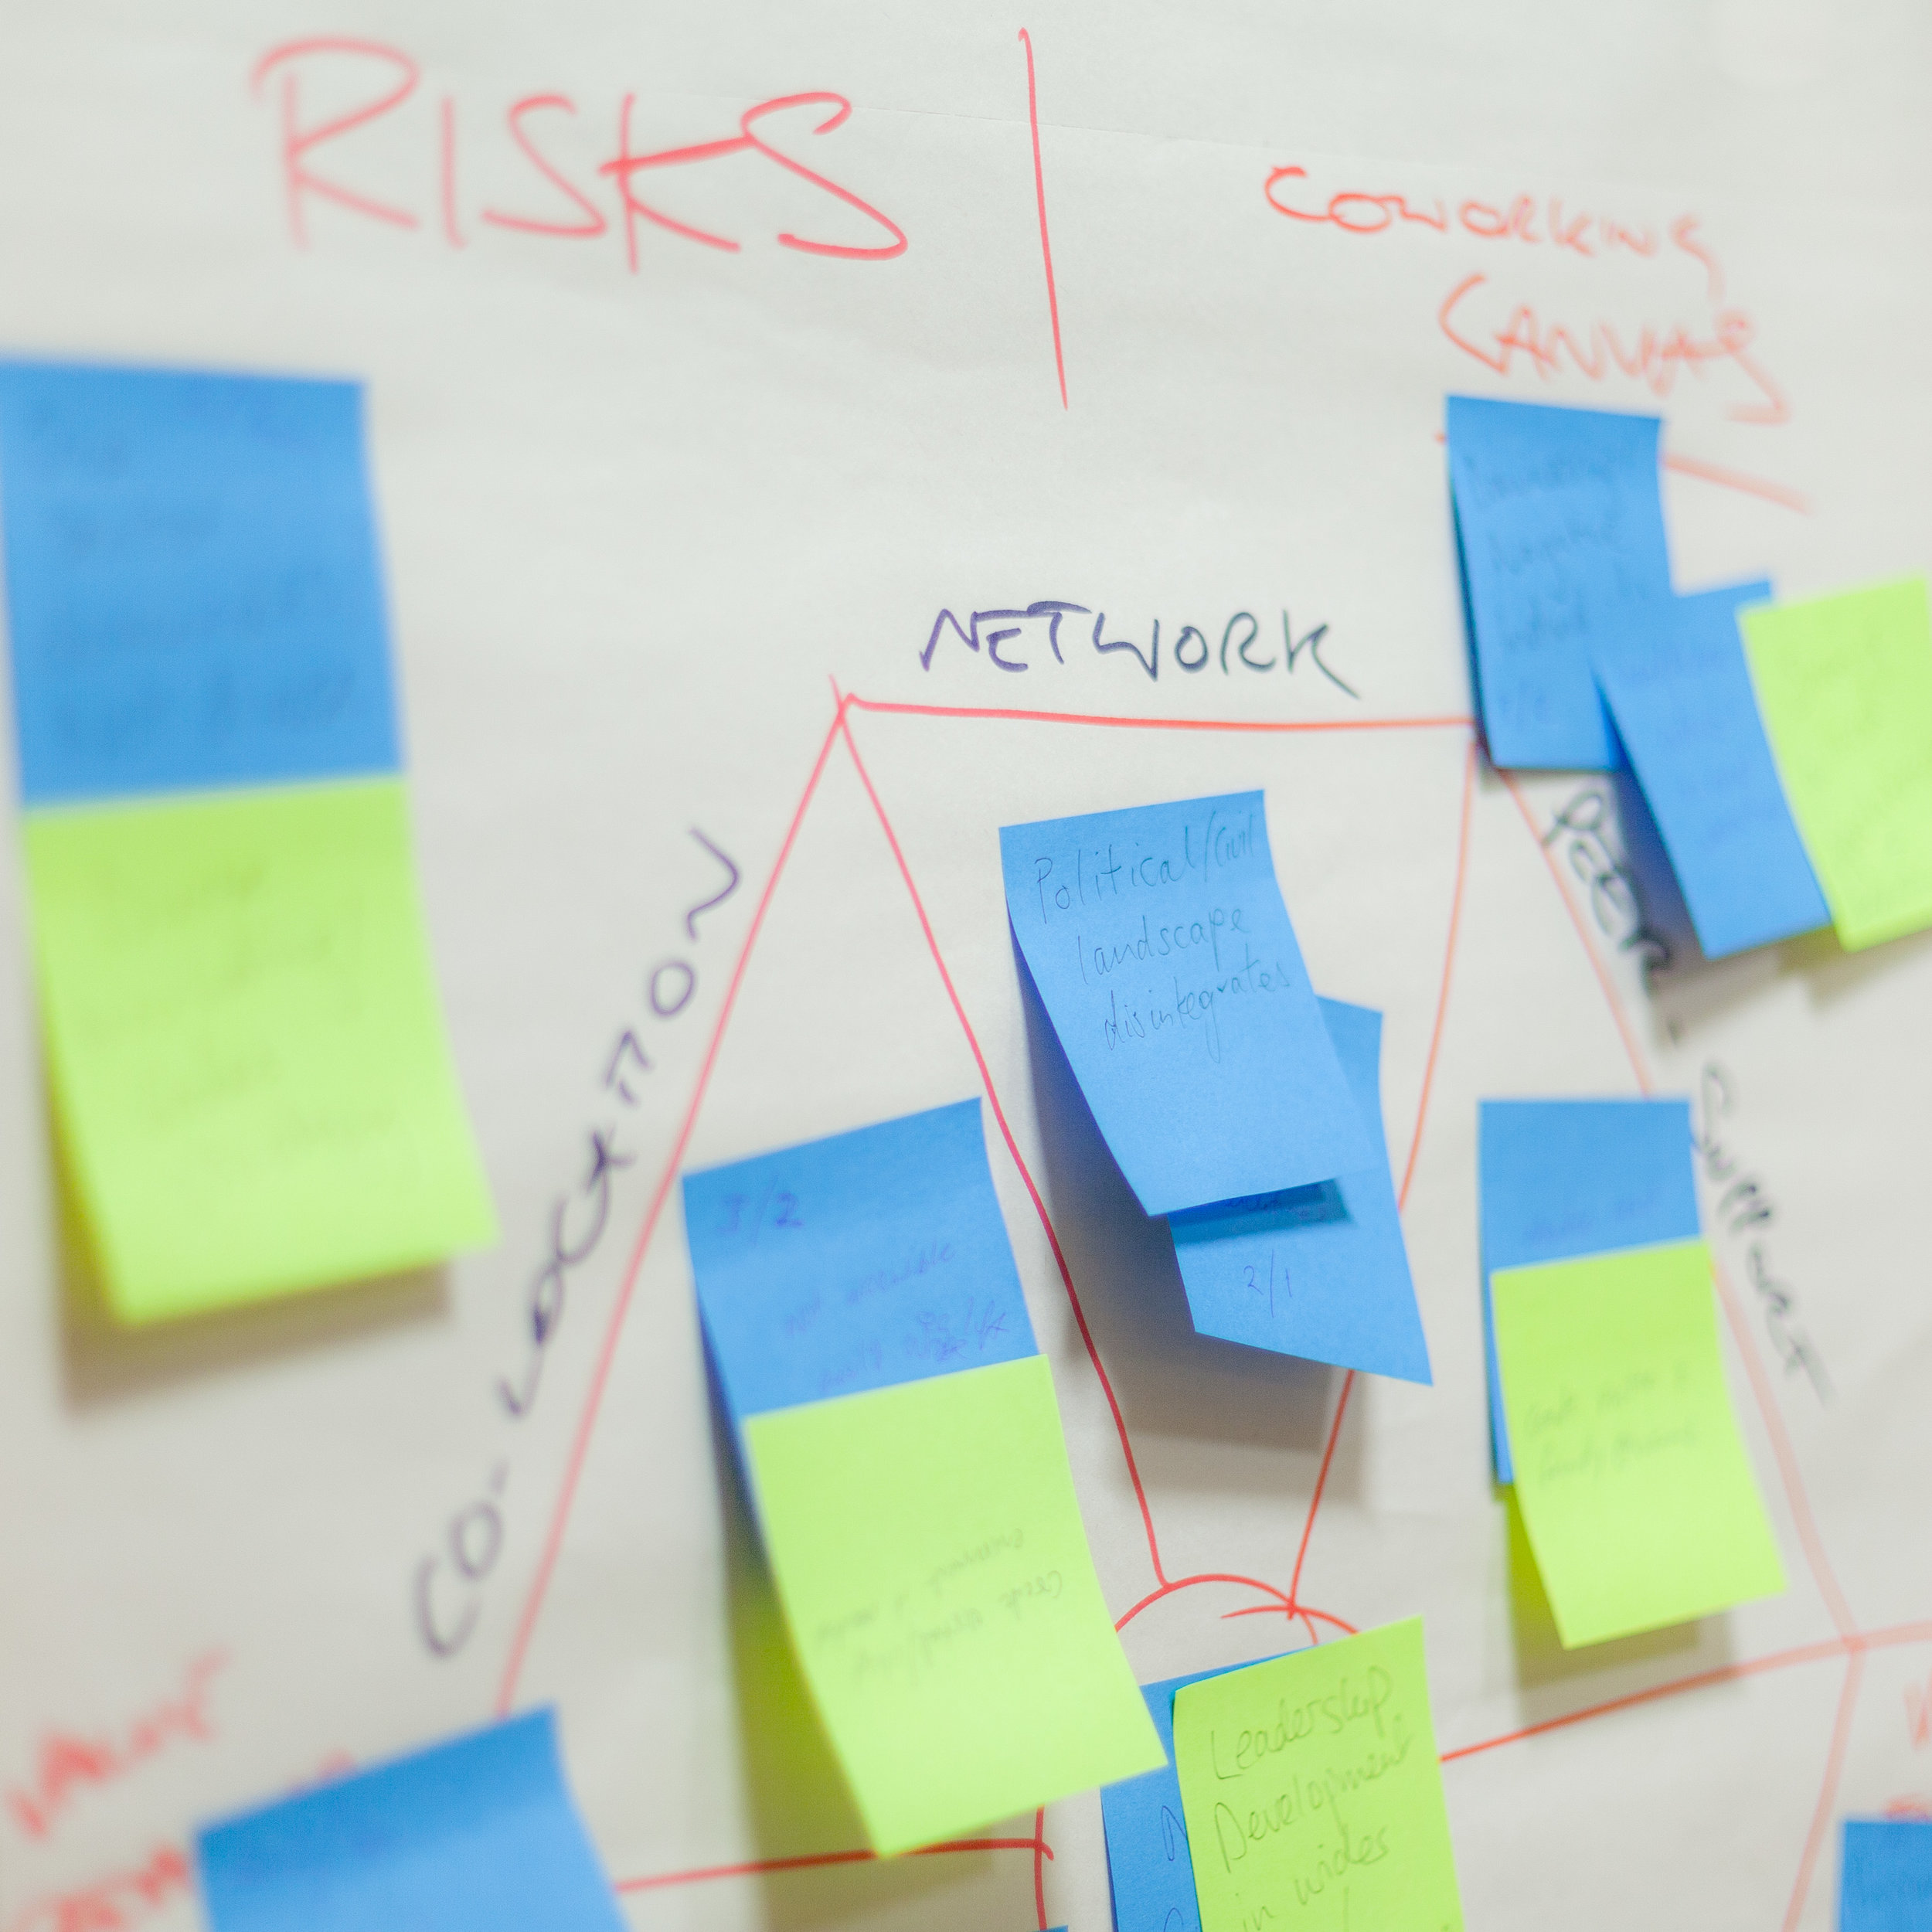 Coworking Canvas Risks Post-its